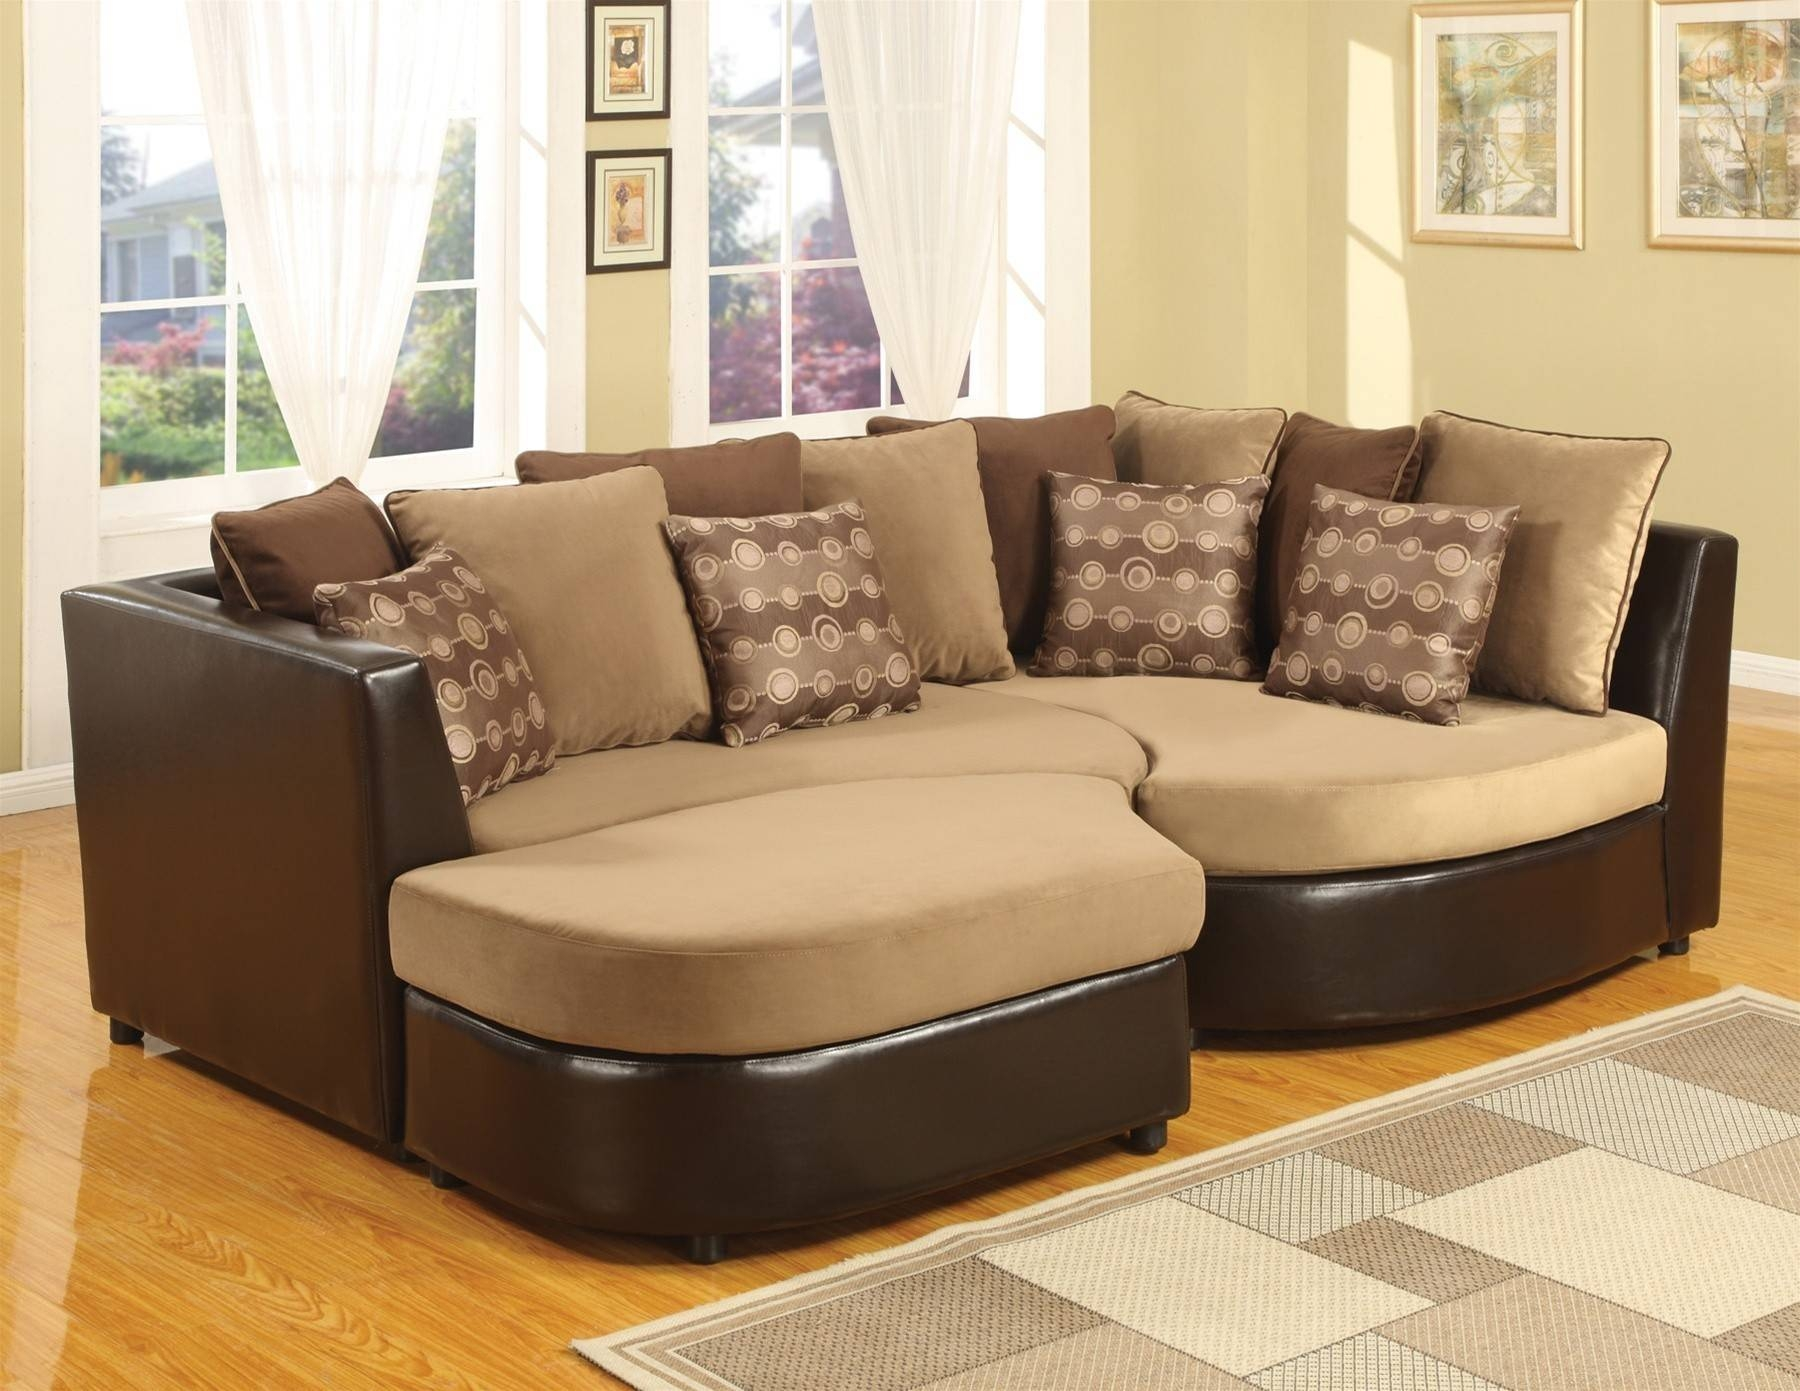 Gallery of Pieces Individual Sectional Sofas (View 8 of 15 Photos)